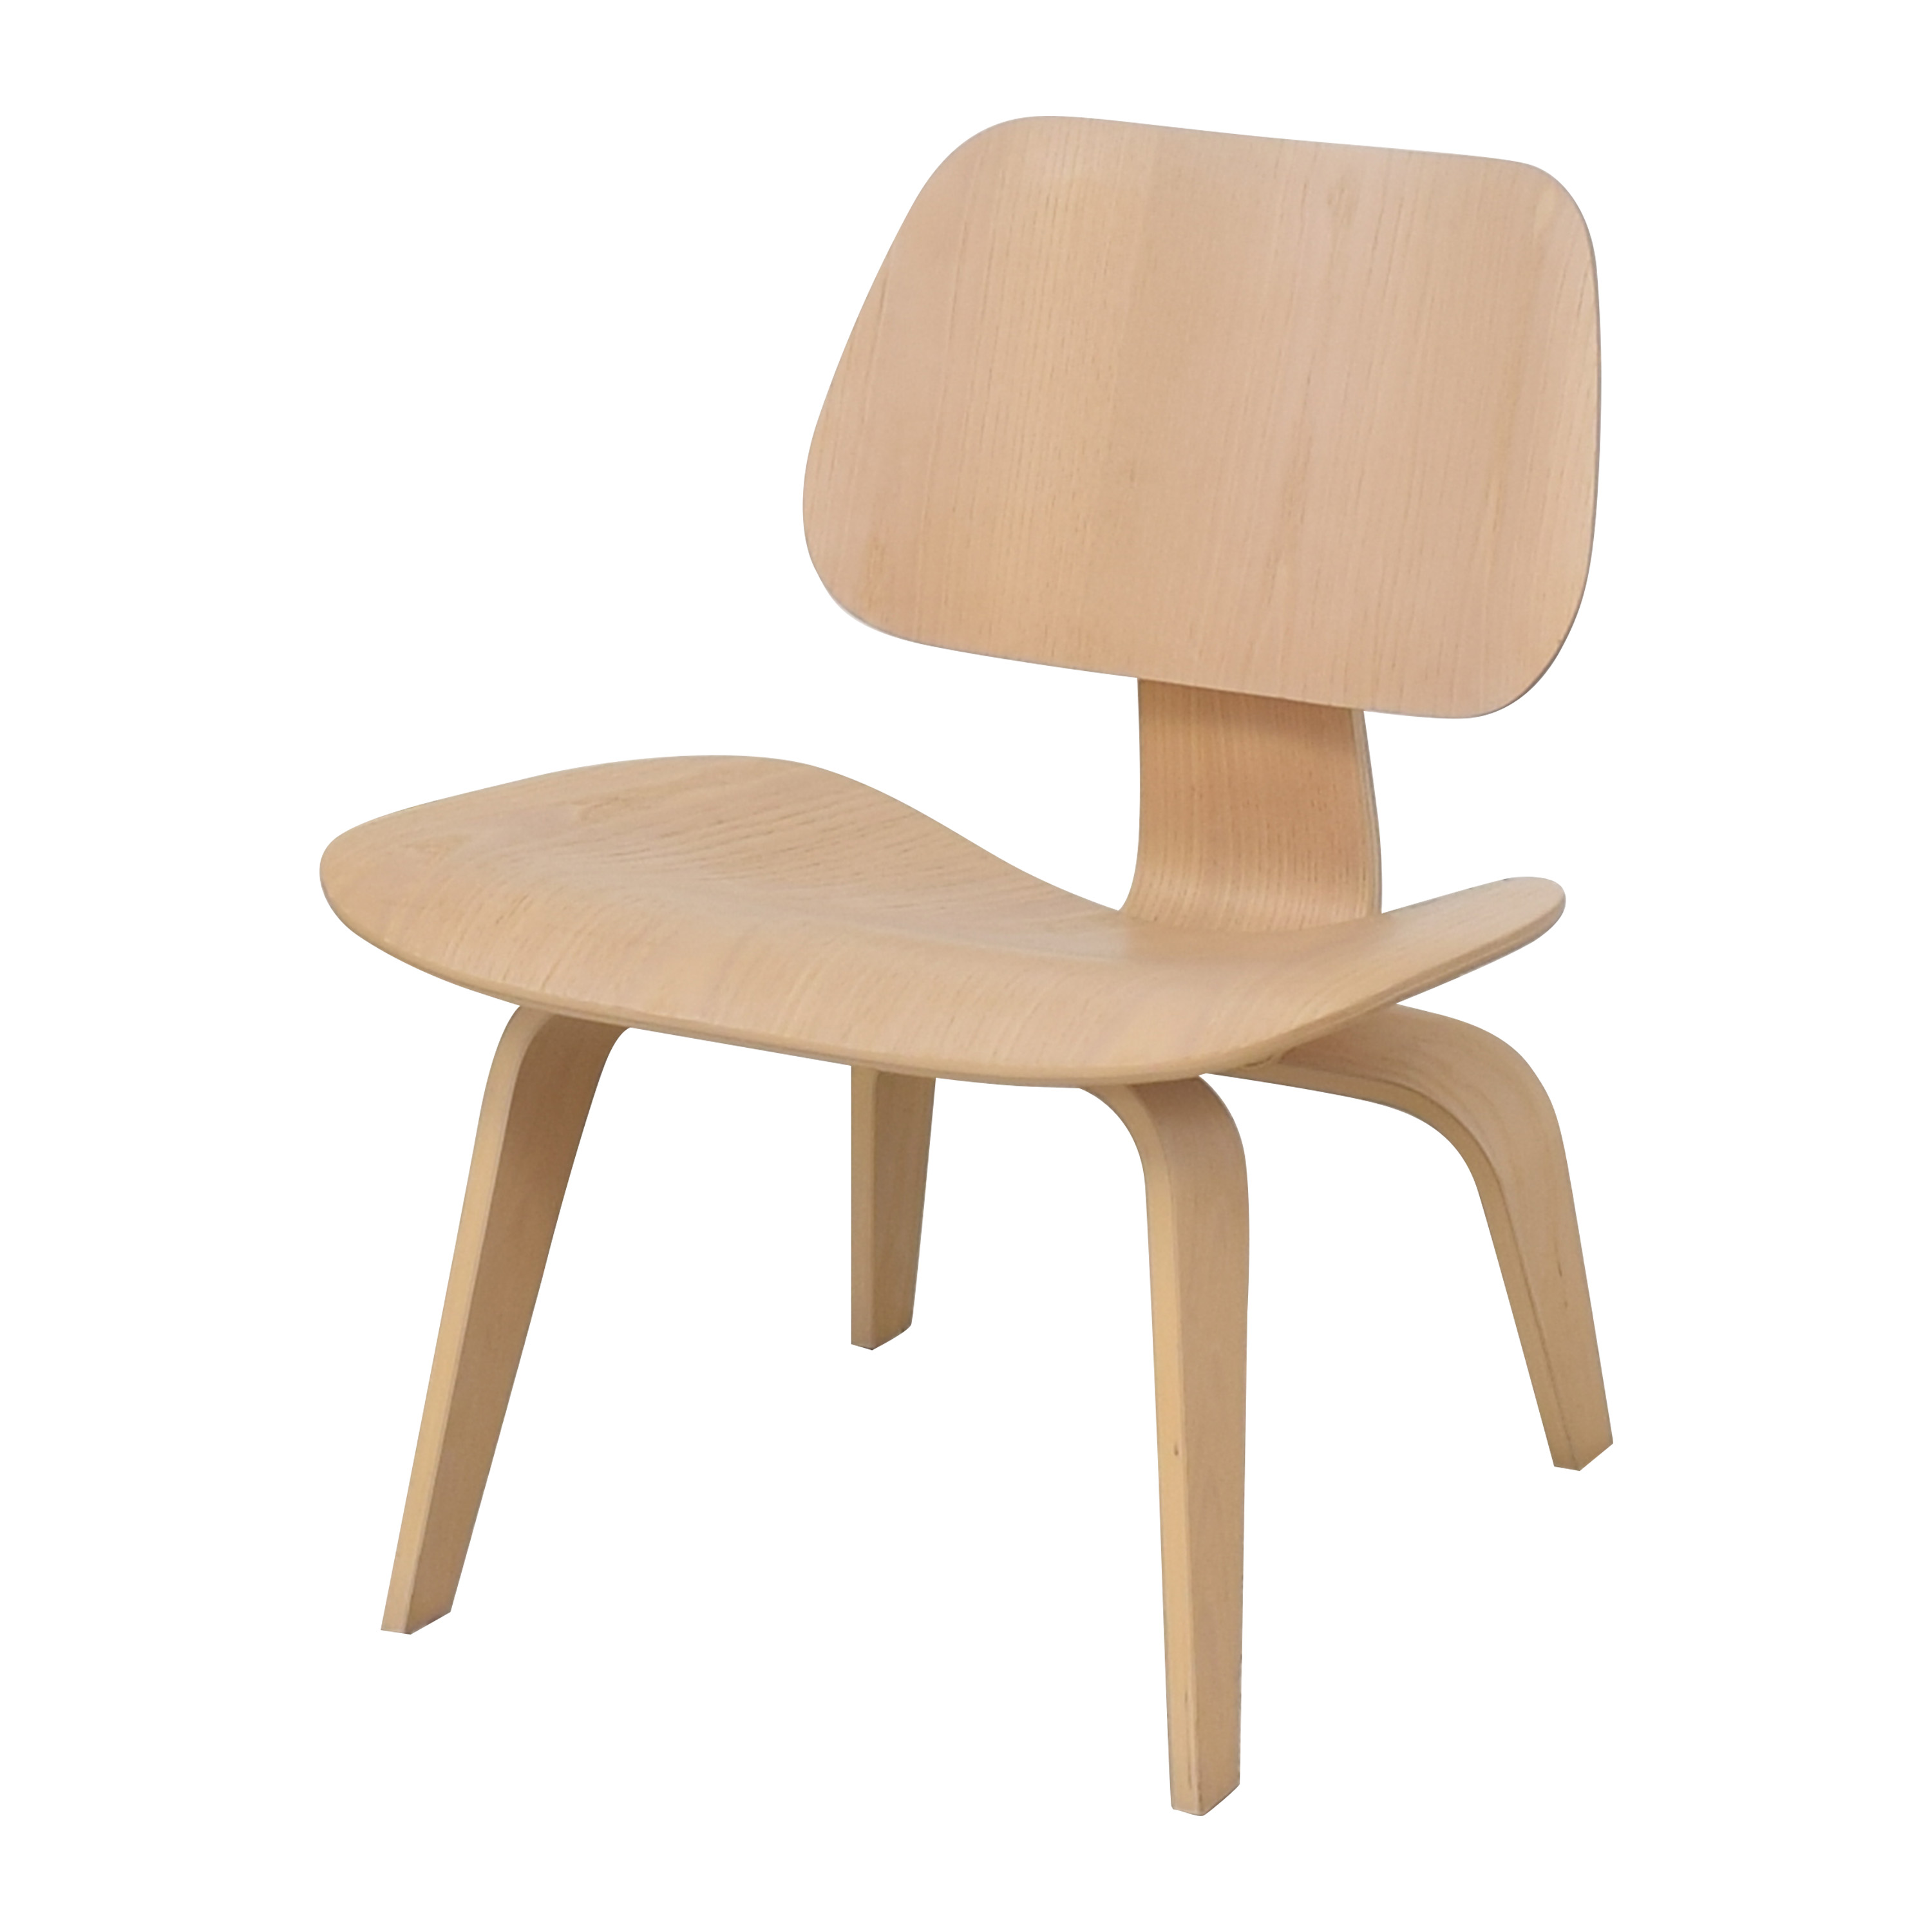 Herman Miller Herman Miller Eames Office Molded Plywood Lounge Chair on sale